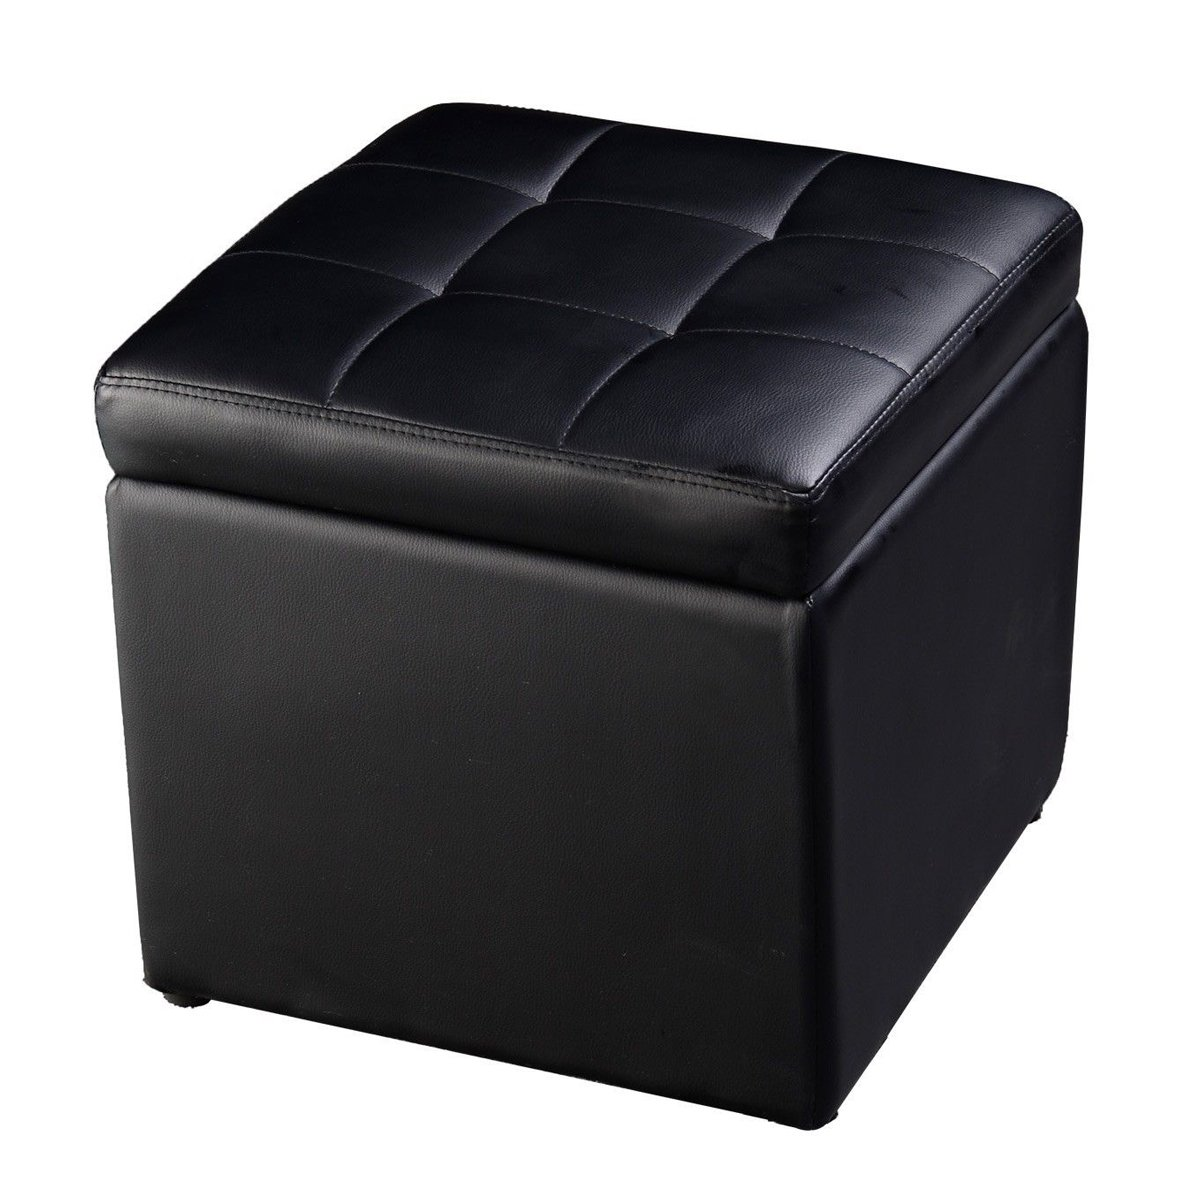 Cube Ottoman Pouffe Storage Box Lounge Seat Footstools with Hinge Top Black